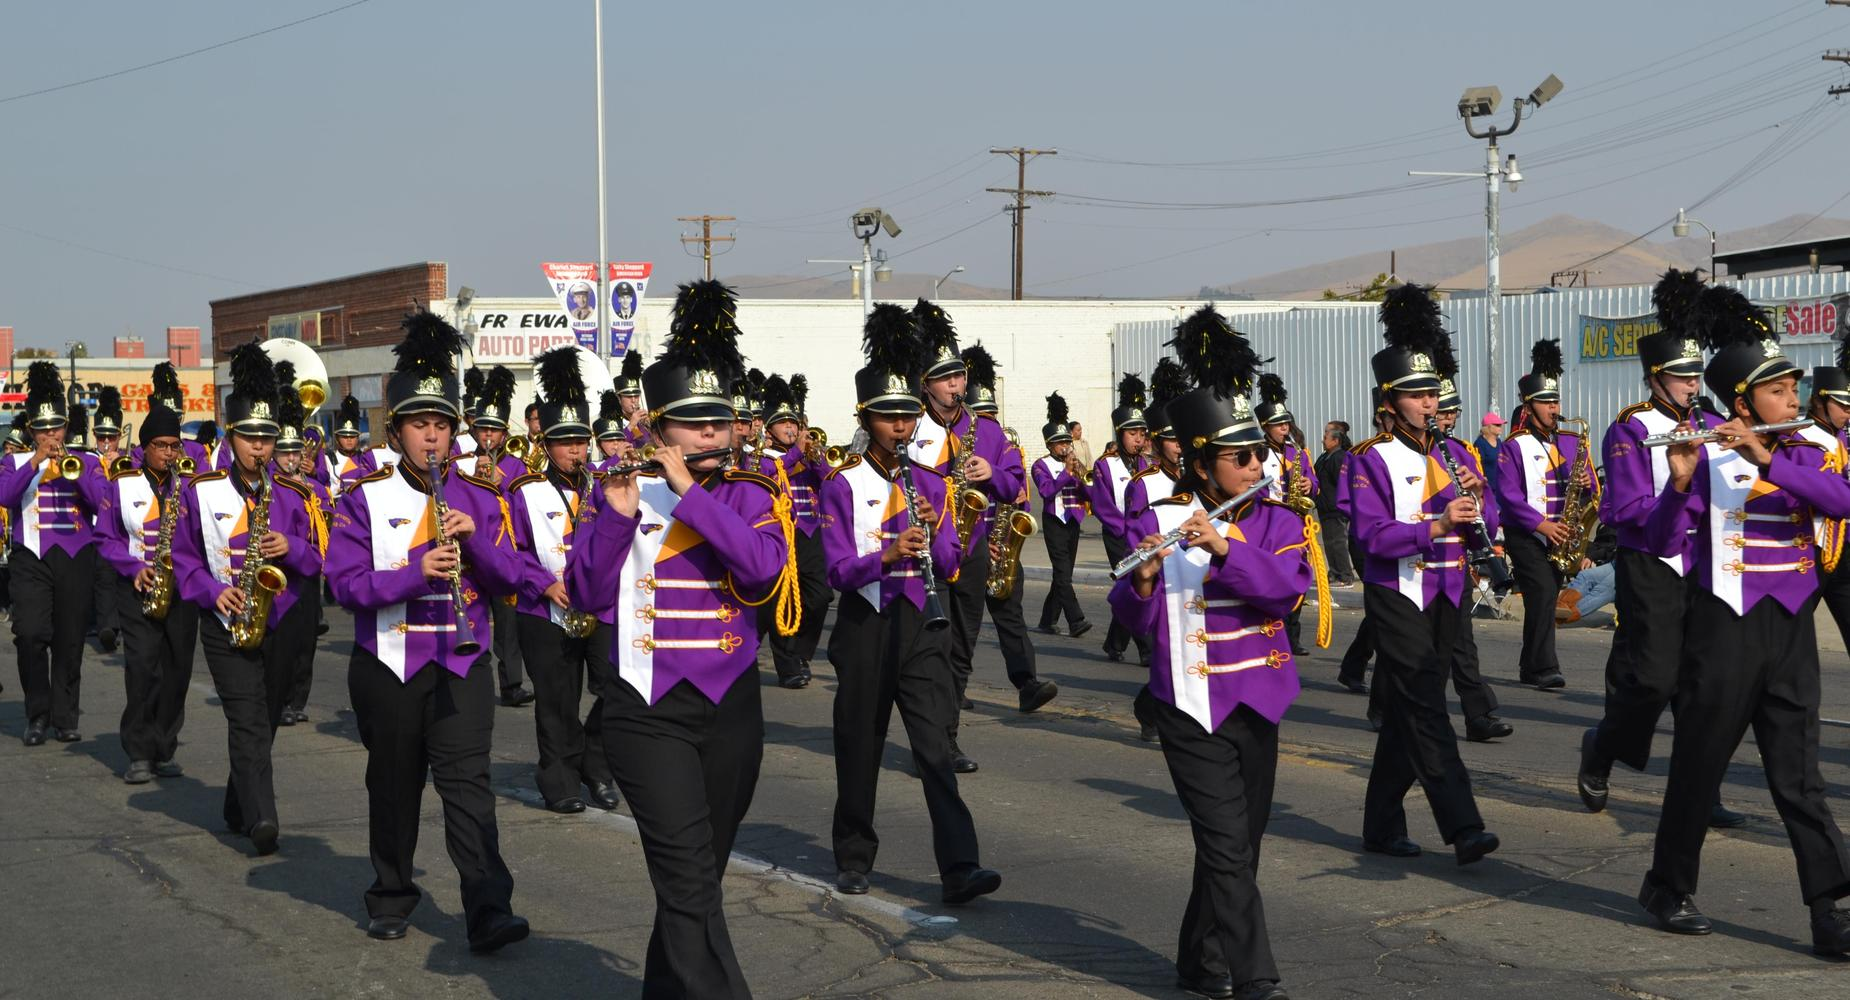 Alpine Vista band marching in city parade